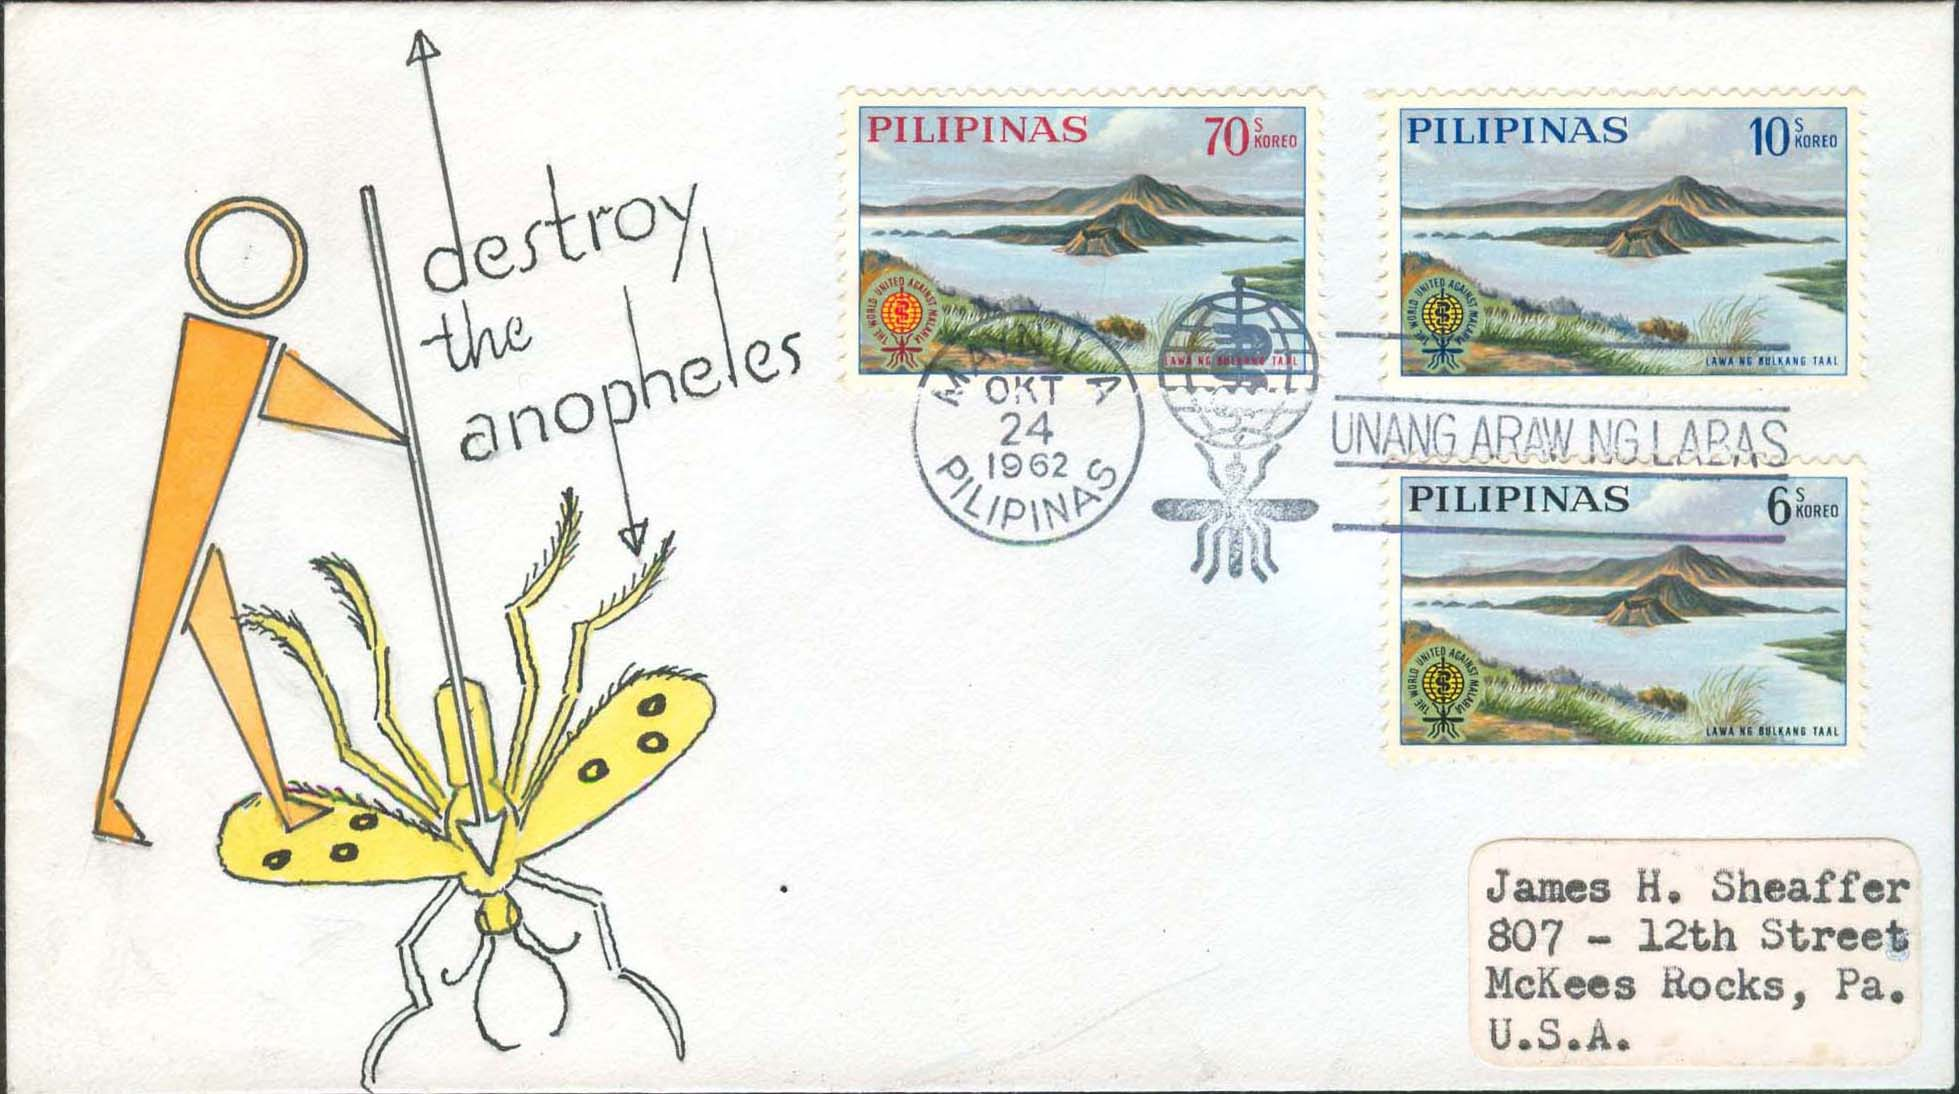 Philippines Scott 868-870 FDC - Produced By Ulrich